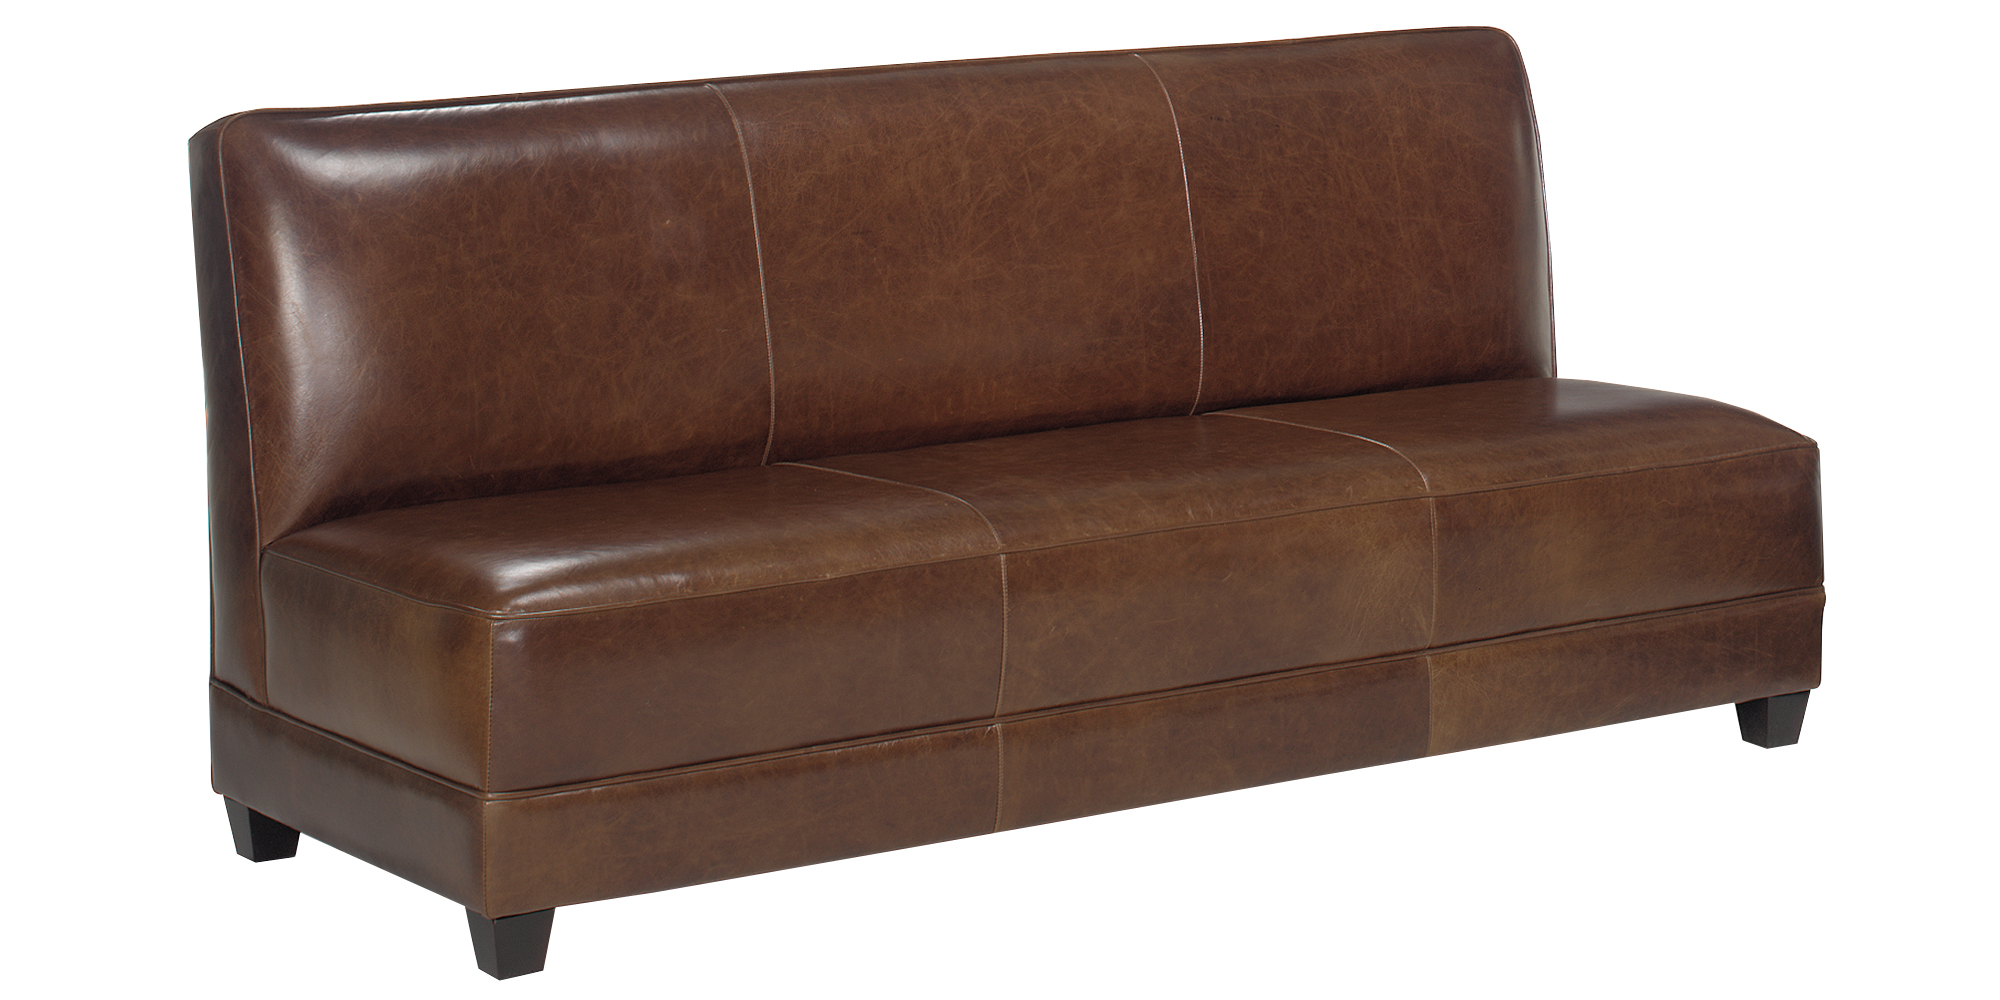 Armless Leather Settee Sofa Set With Ottoman And Chair Club Furniture